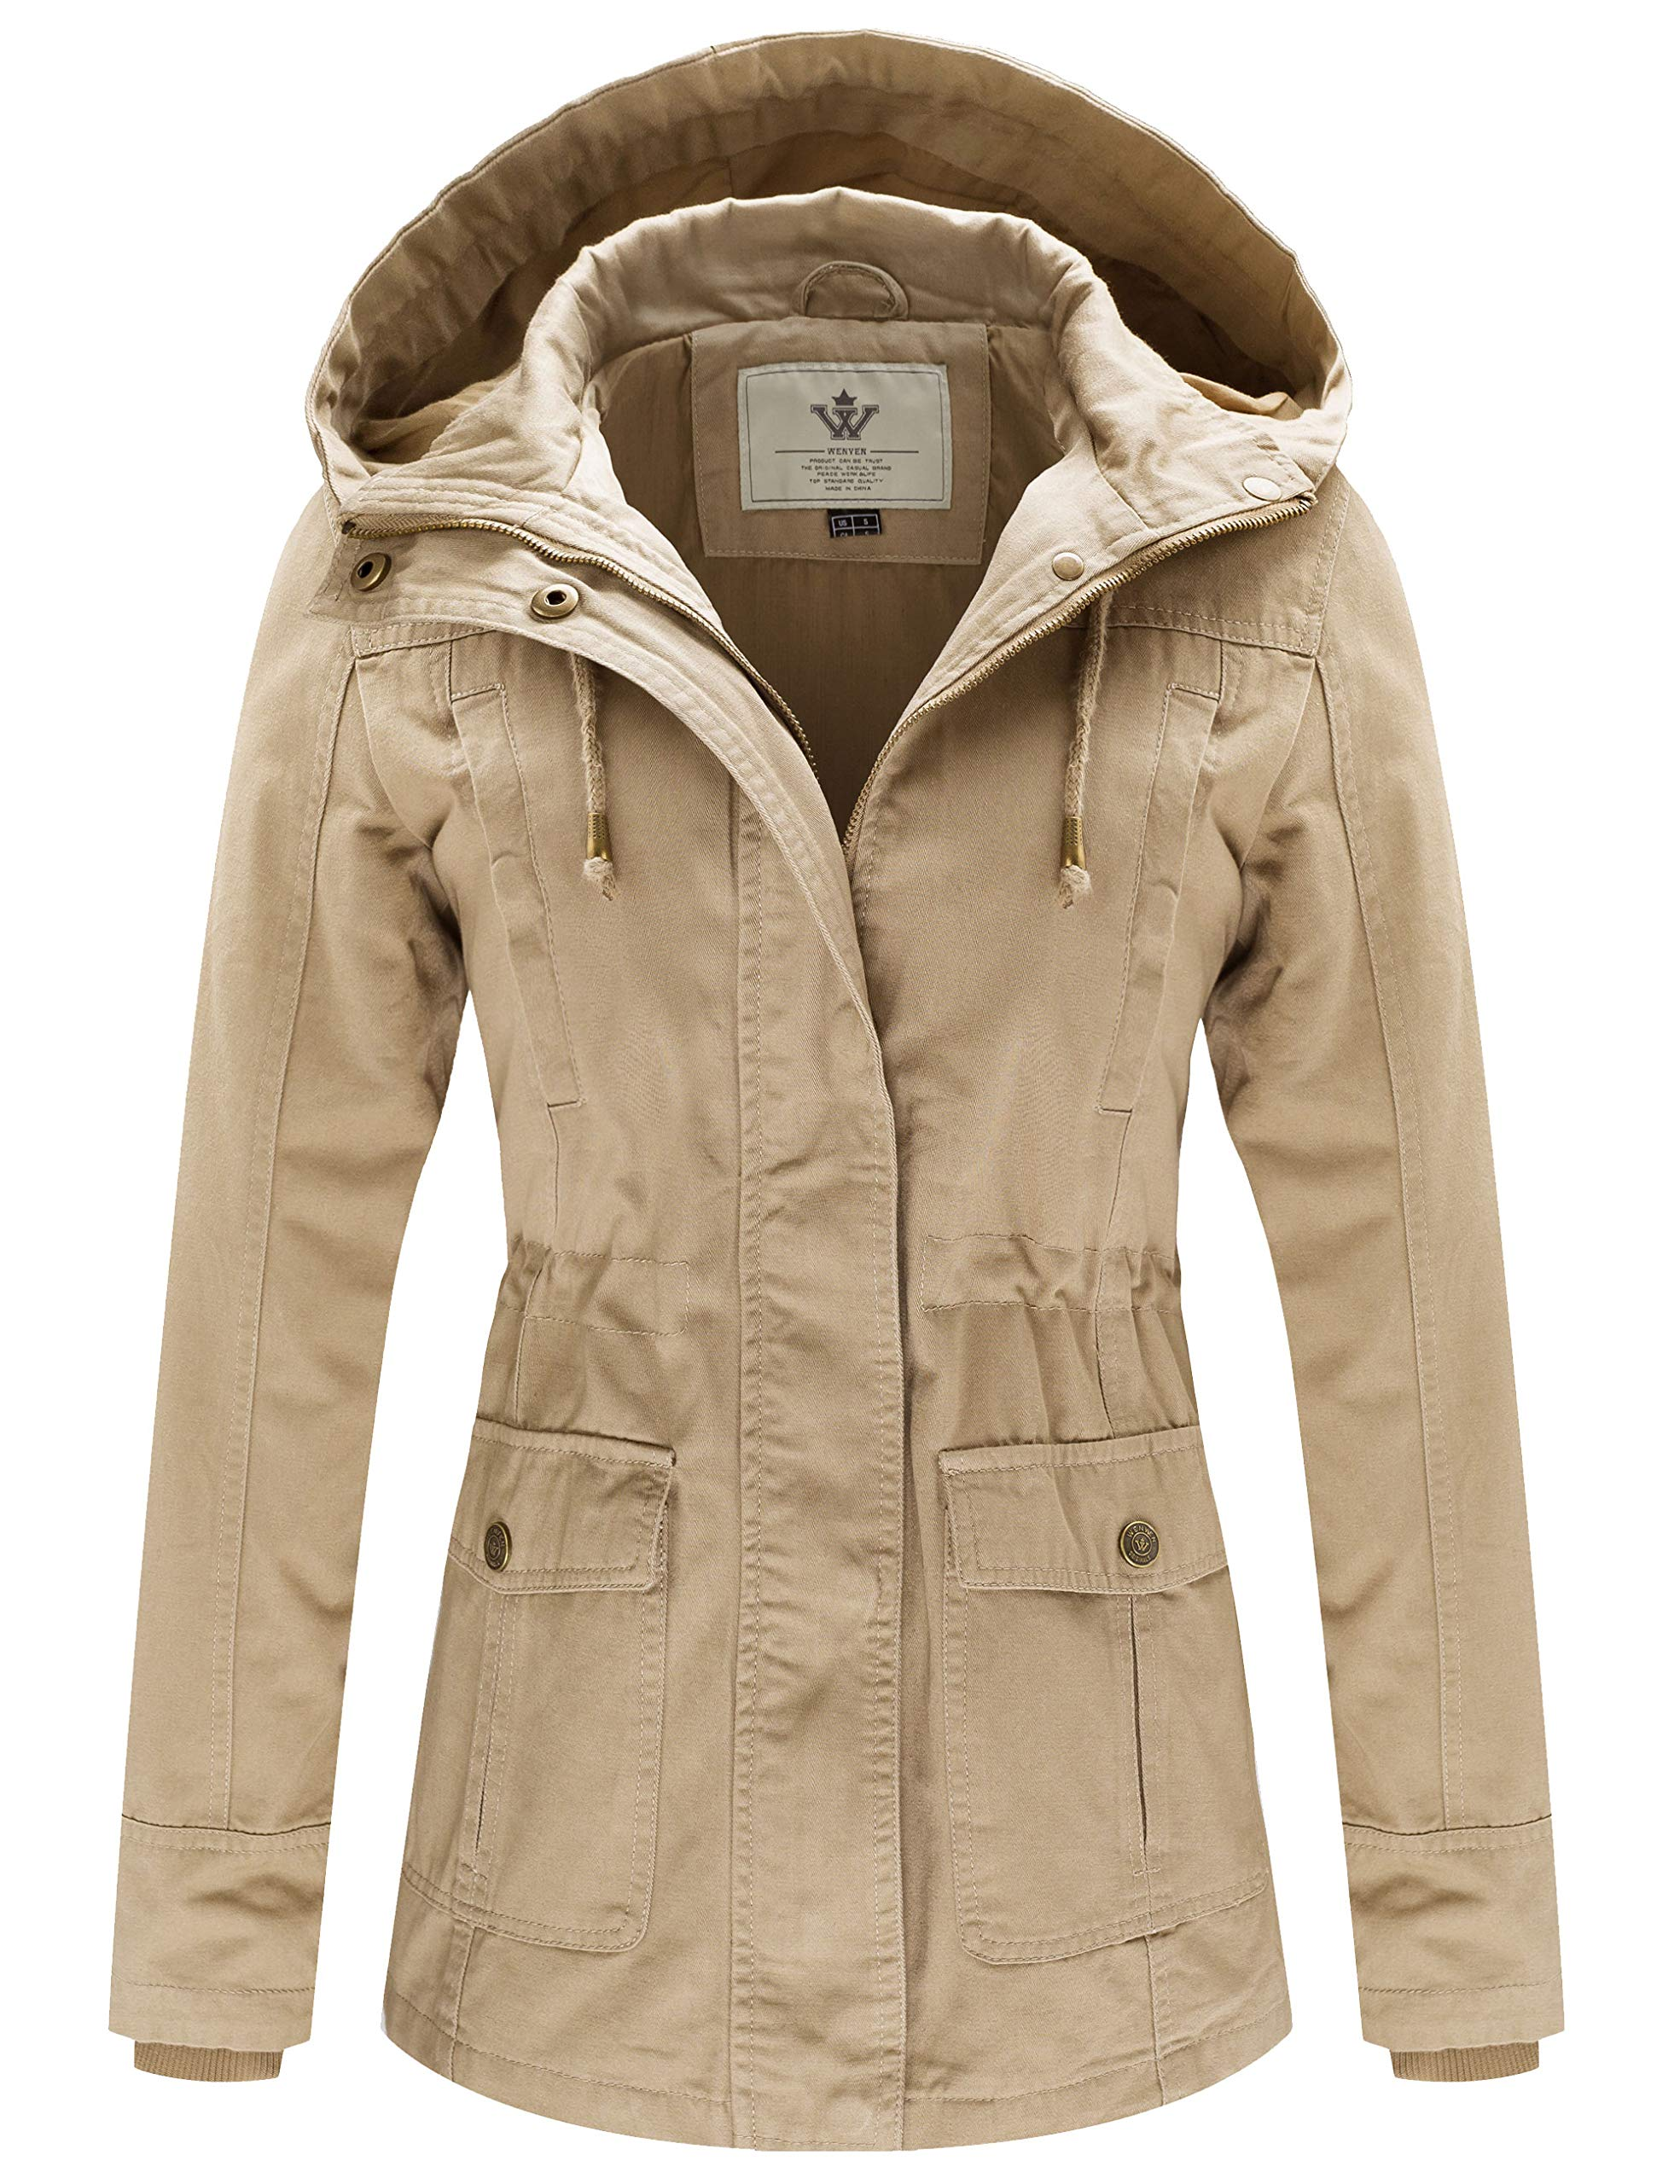 WenVen Women's Spring Cotton Military Coat Anorak Hooded Jacket(Khaki, M) by WenVen